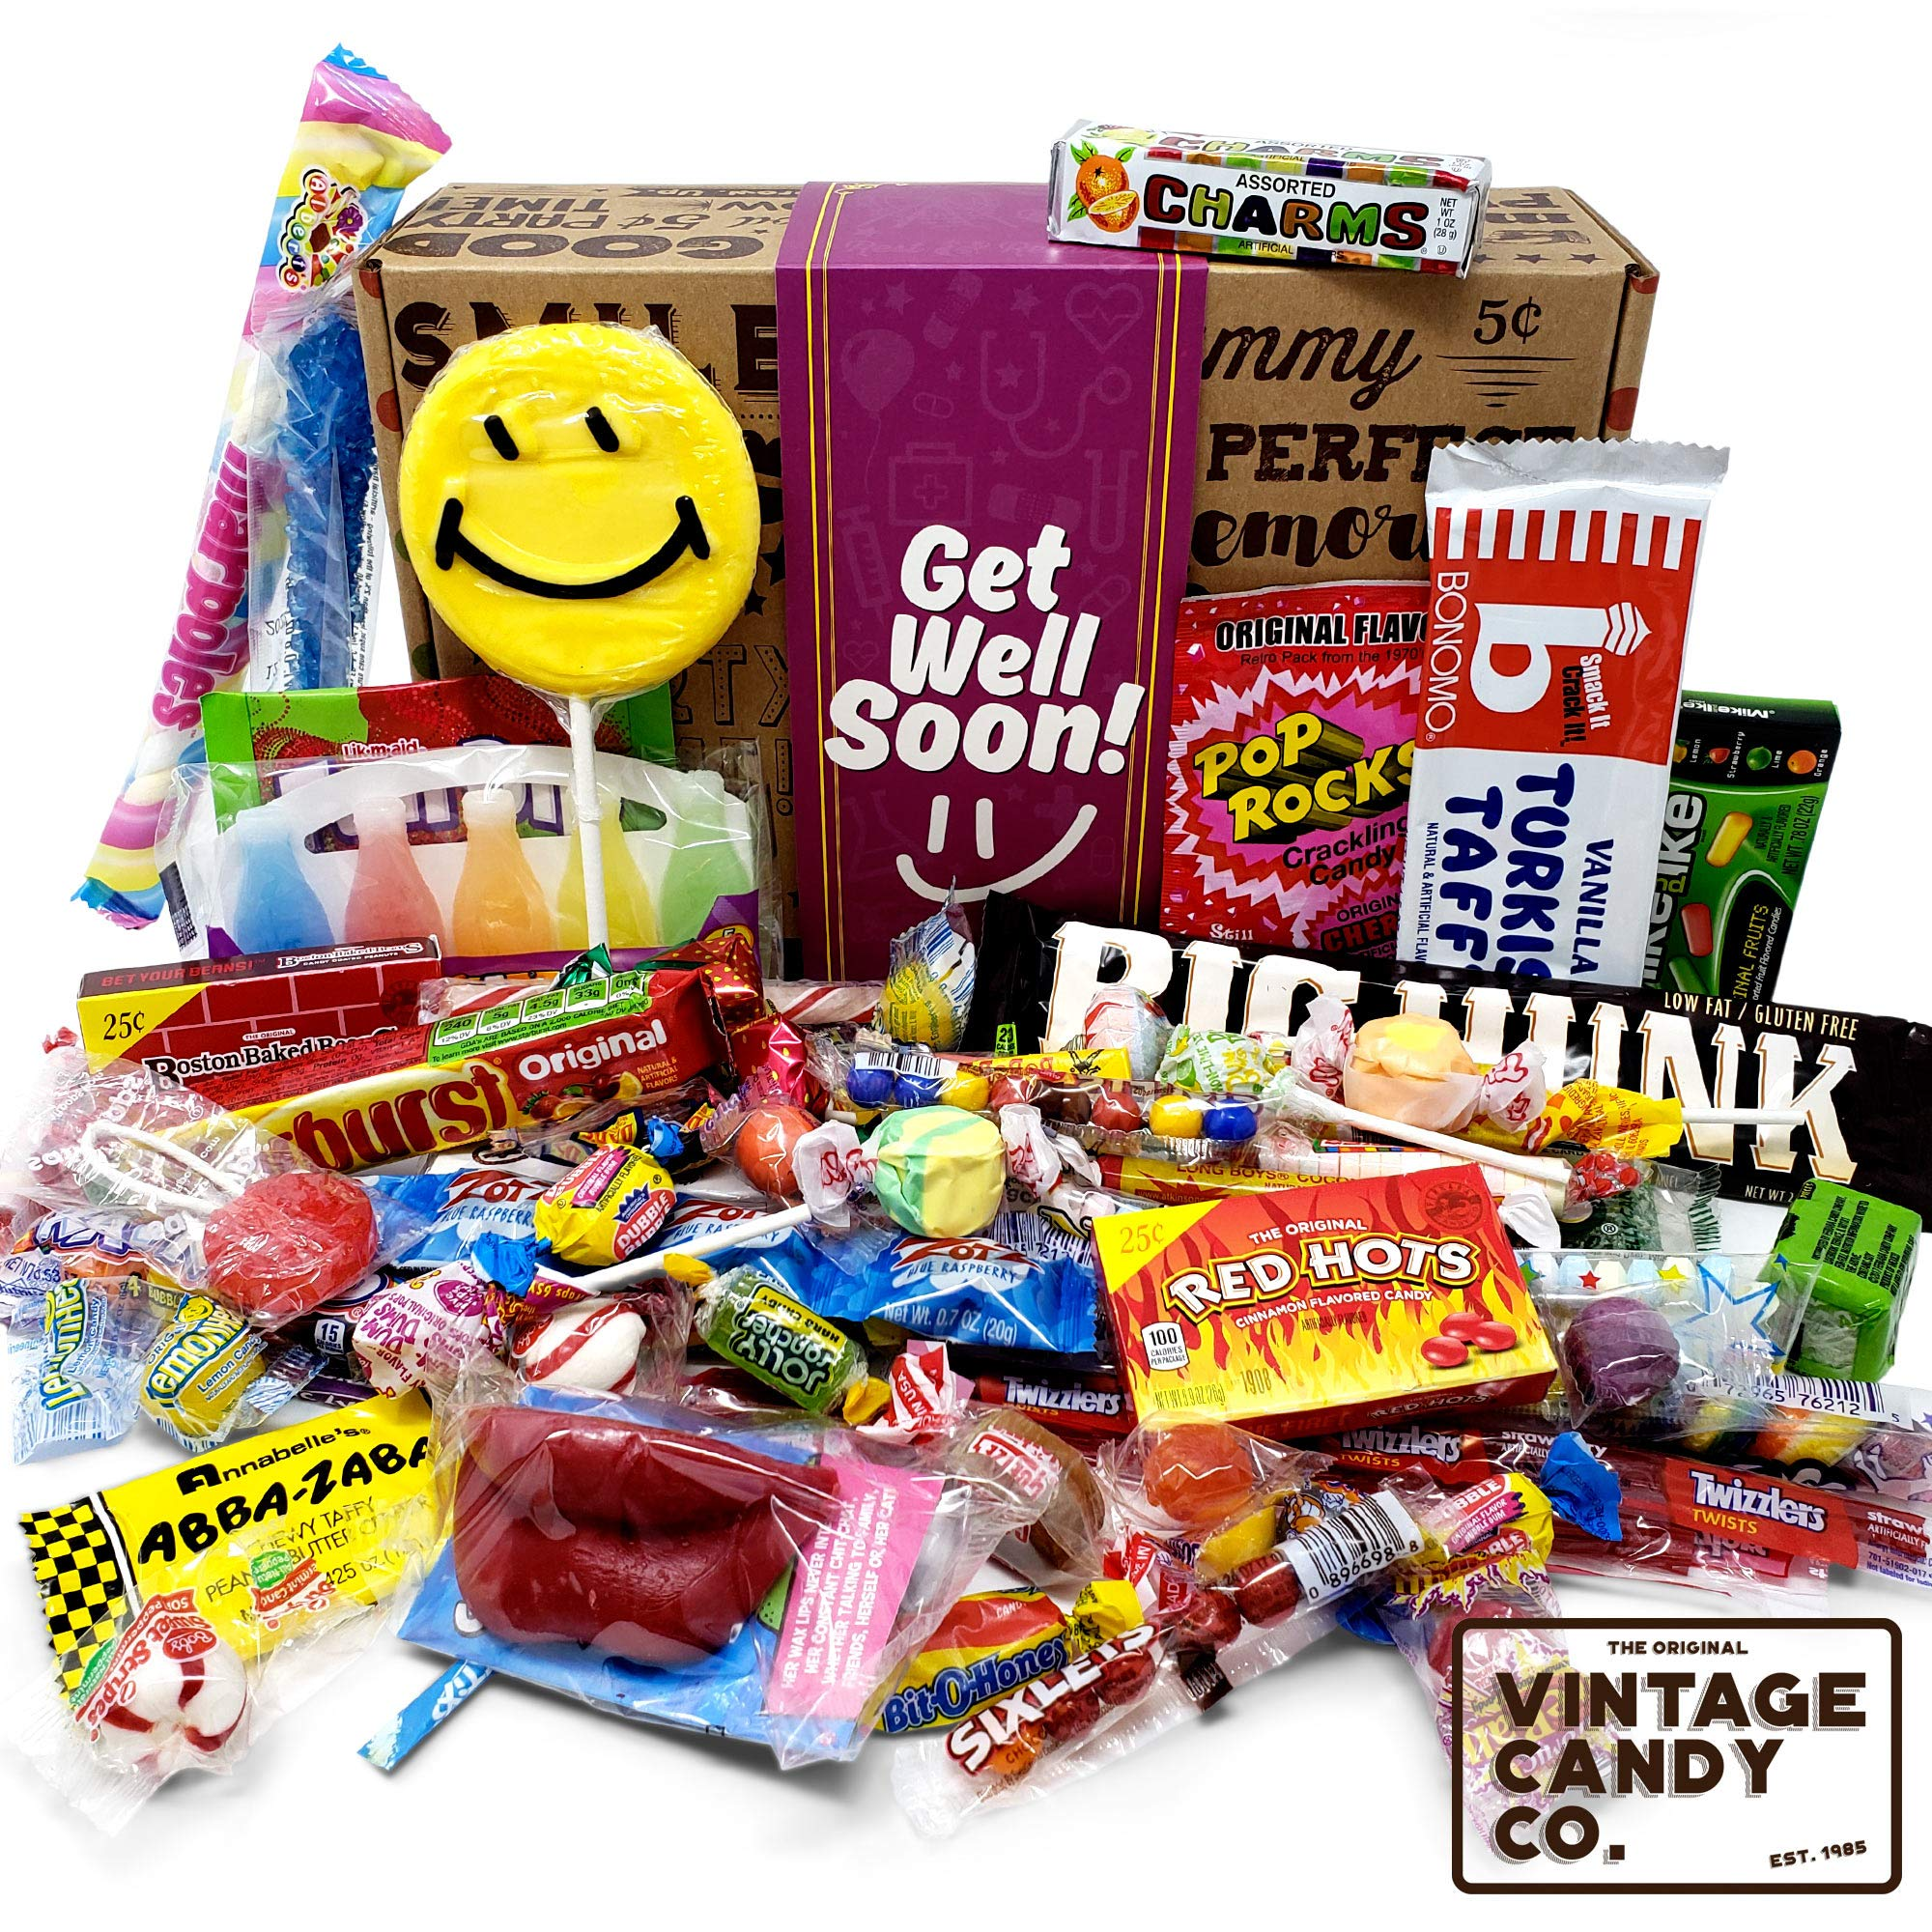 GET WELL SOON FEEL BETTER CARE PACKAGE- Nostalgic Decade Candies GIFT BOX - Fun Gag Gift Basket For Boy or Girl - PERFECT For Adults, College Students, Friend, Teens, Man or Woman by Vintage Candy Co.